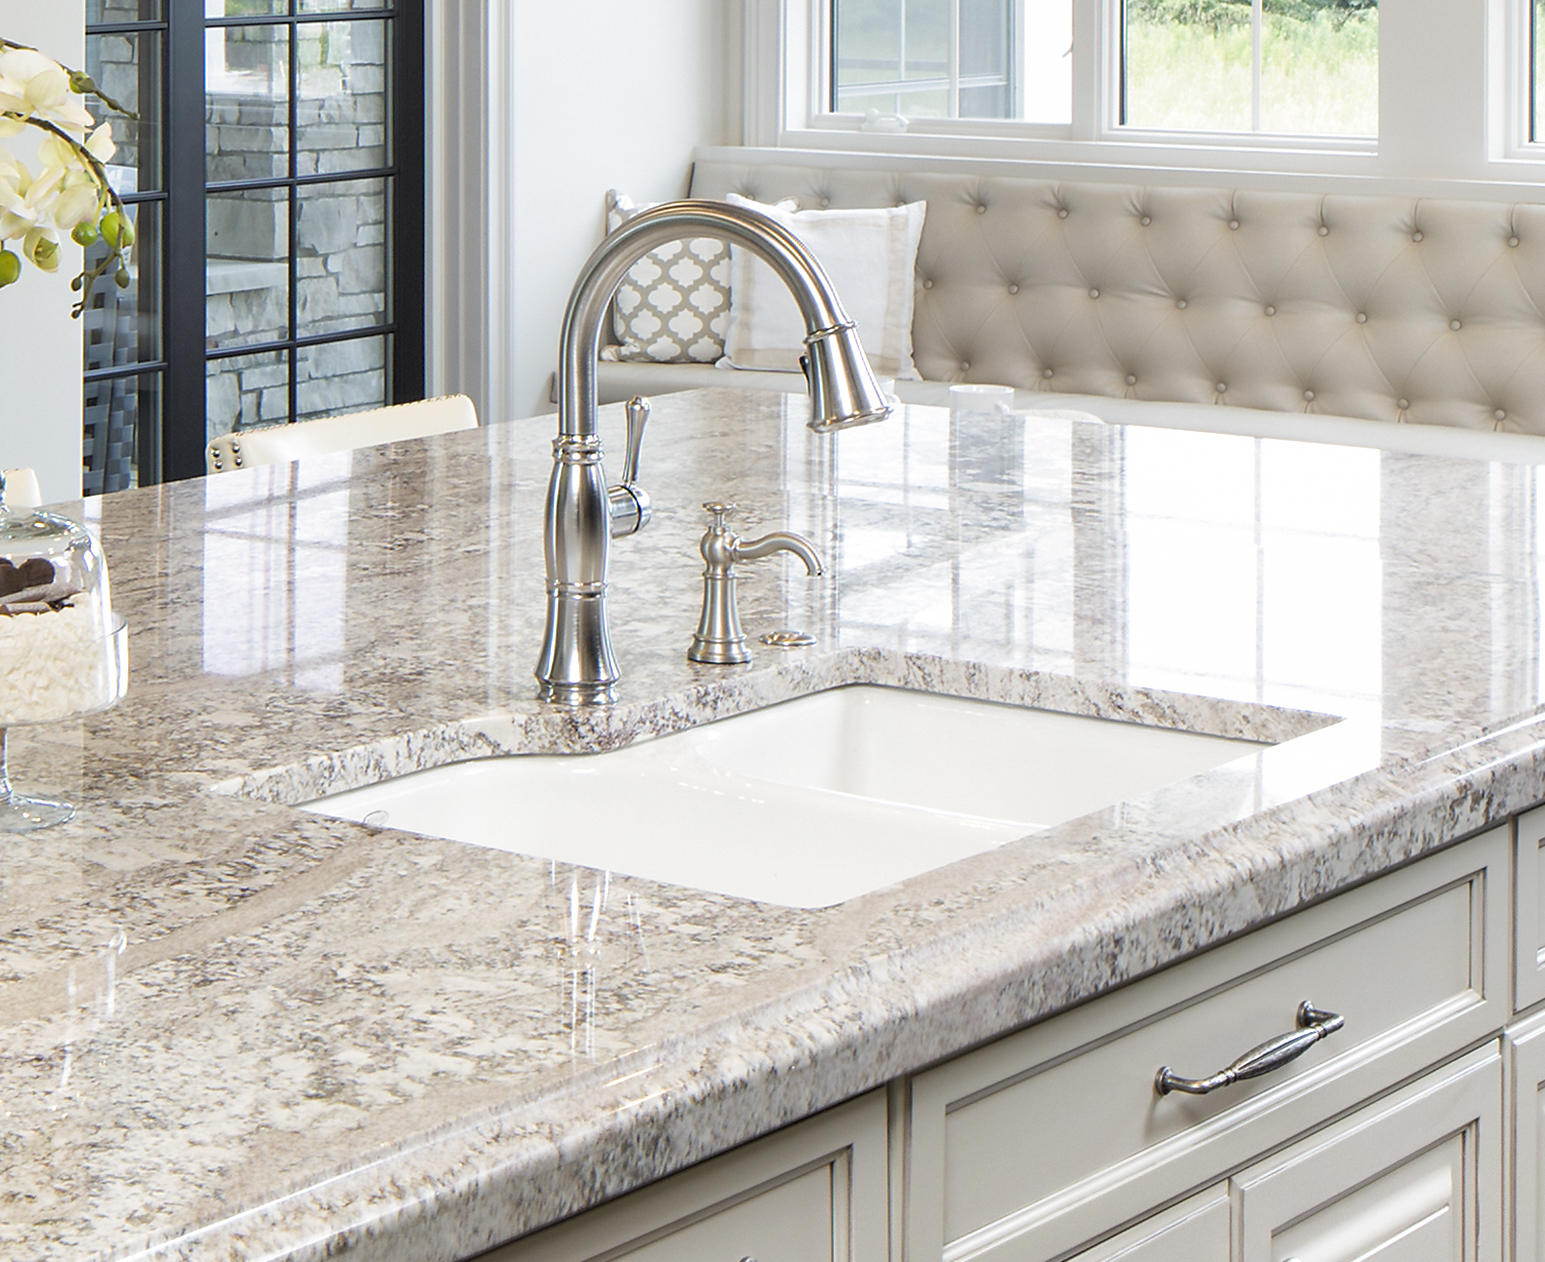 Sink Options For Granite Countertops Bathroom Kitchen Sinks C D Granite Minneapolis St Paul